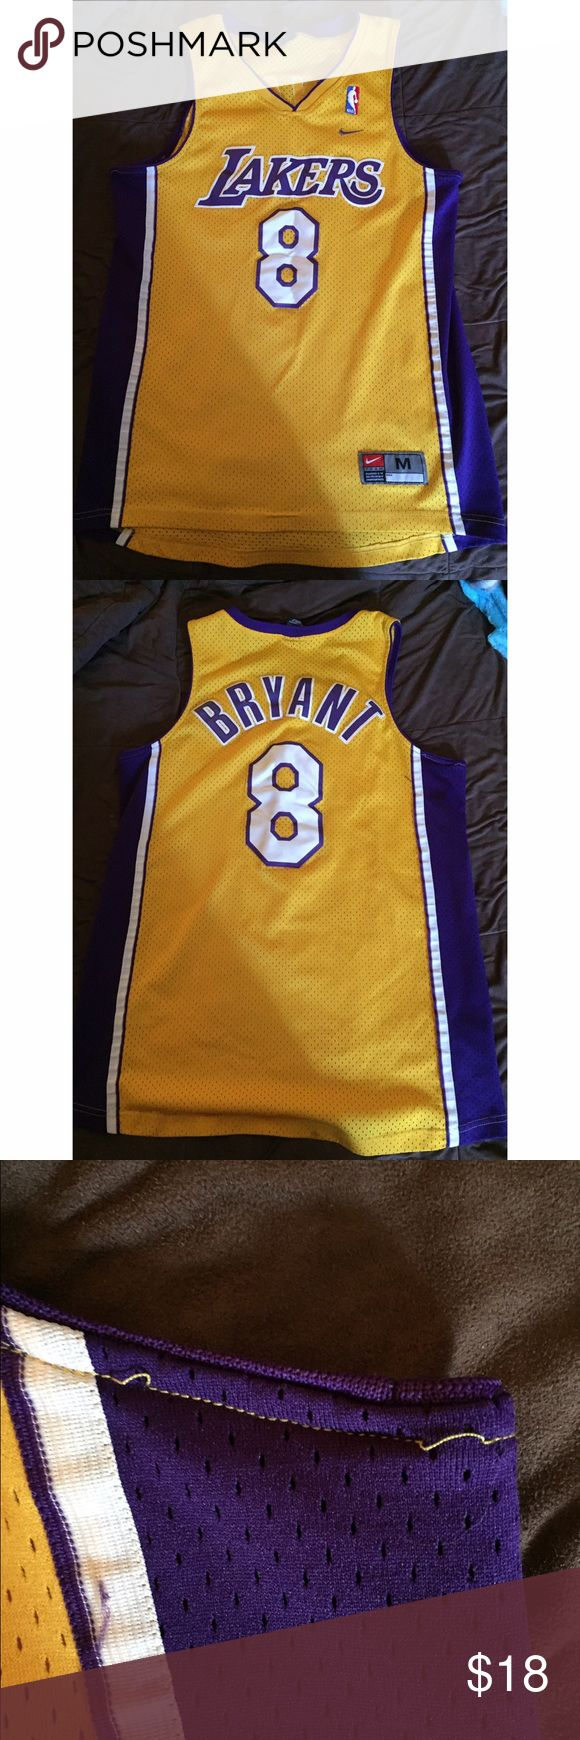 Lakers Kobe Bryant Jersey Lakers Kobe Bryant jersey #8. Used but still in good condition. The only two issues I could find on the shirt were the threading around the sleeve and a small stain on the bottom back of the shirt. Posted pictures of these problems. Price reflects these issues. Nike Tops